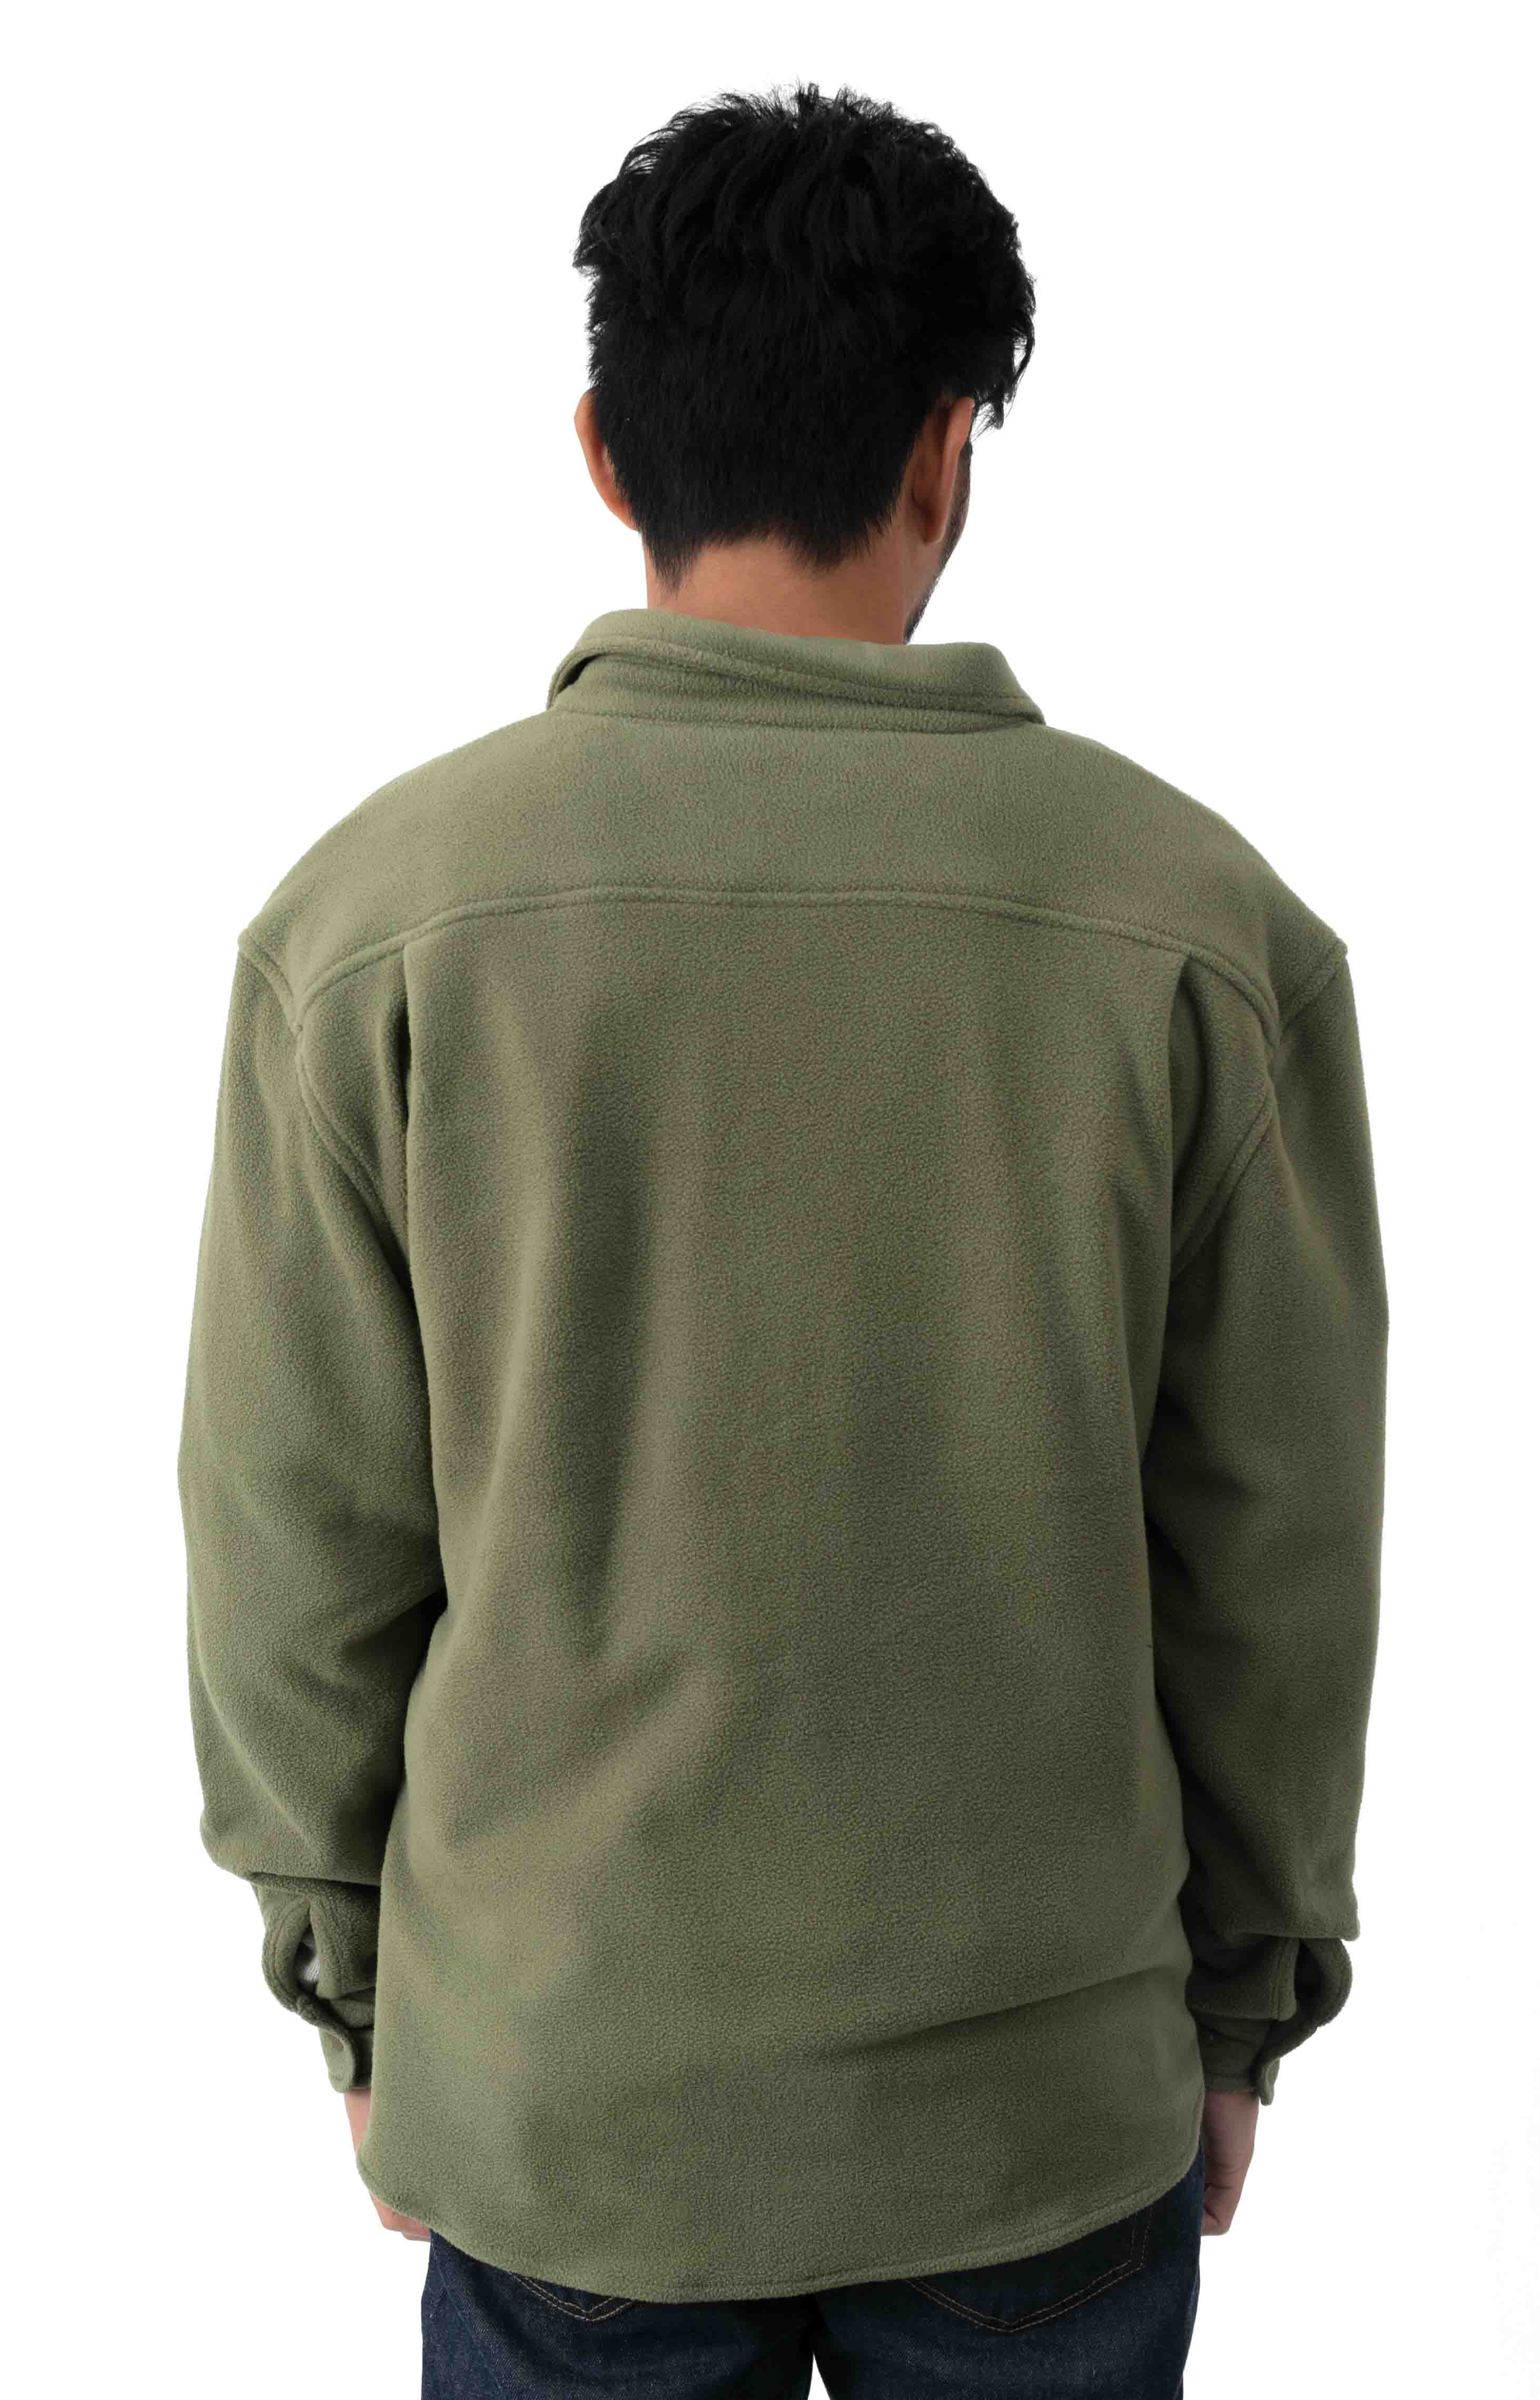 Bowery L/S Arctic Stretch Fleece - Military Olive 3